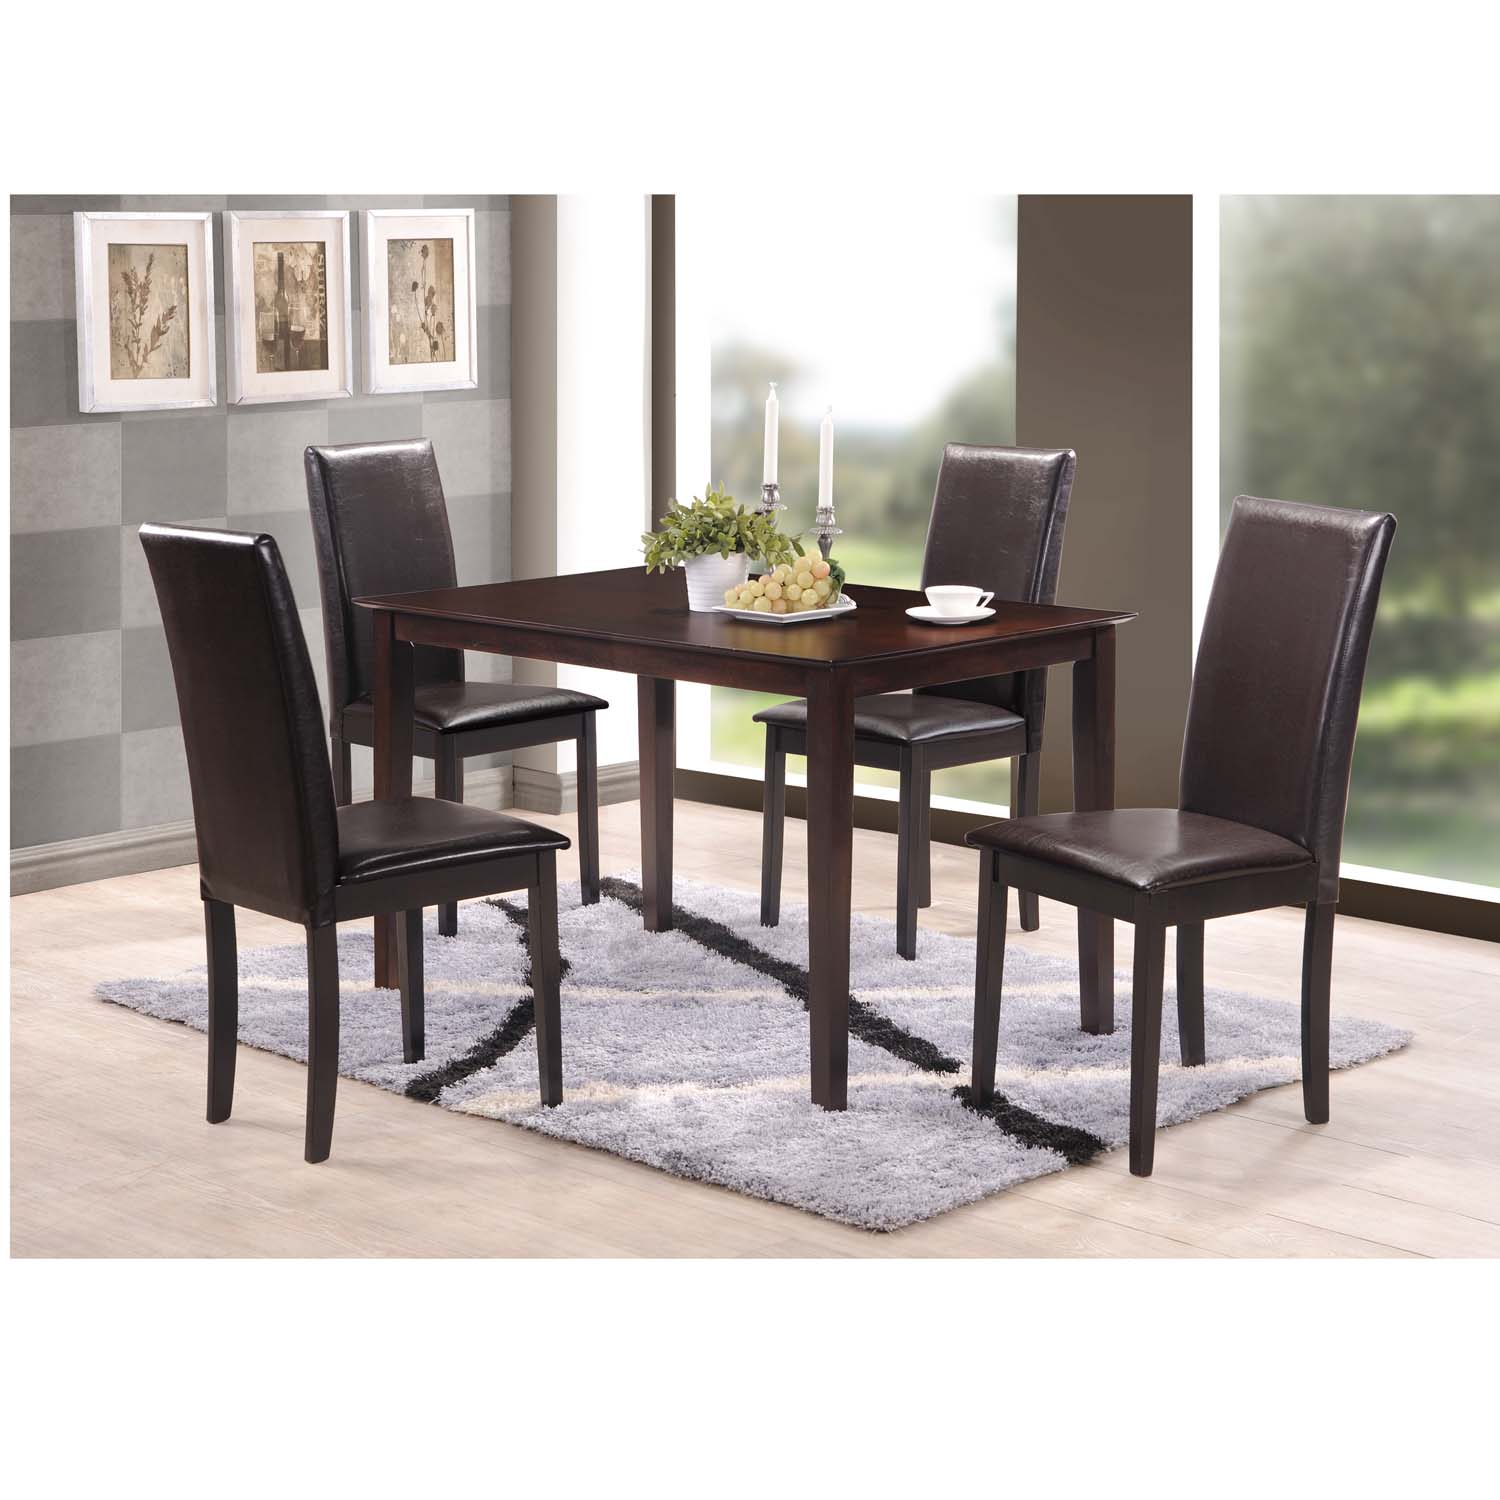 Sweden Piece Dark Brown Modern Dining Set Free Shipping Today - Modern dining room table sets